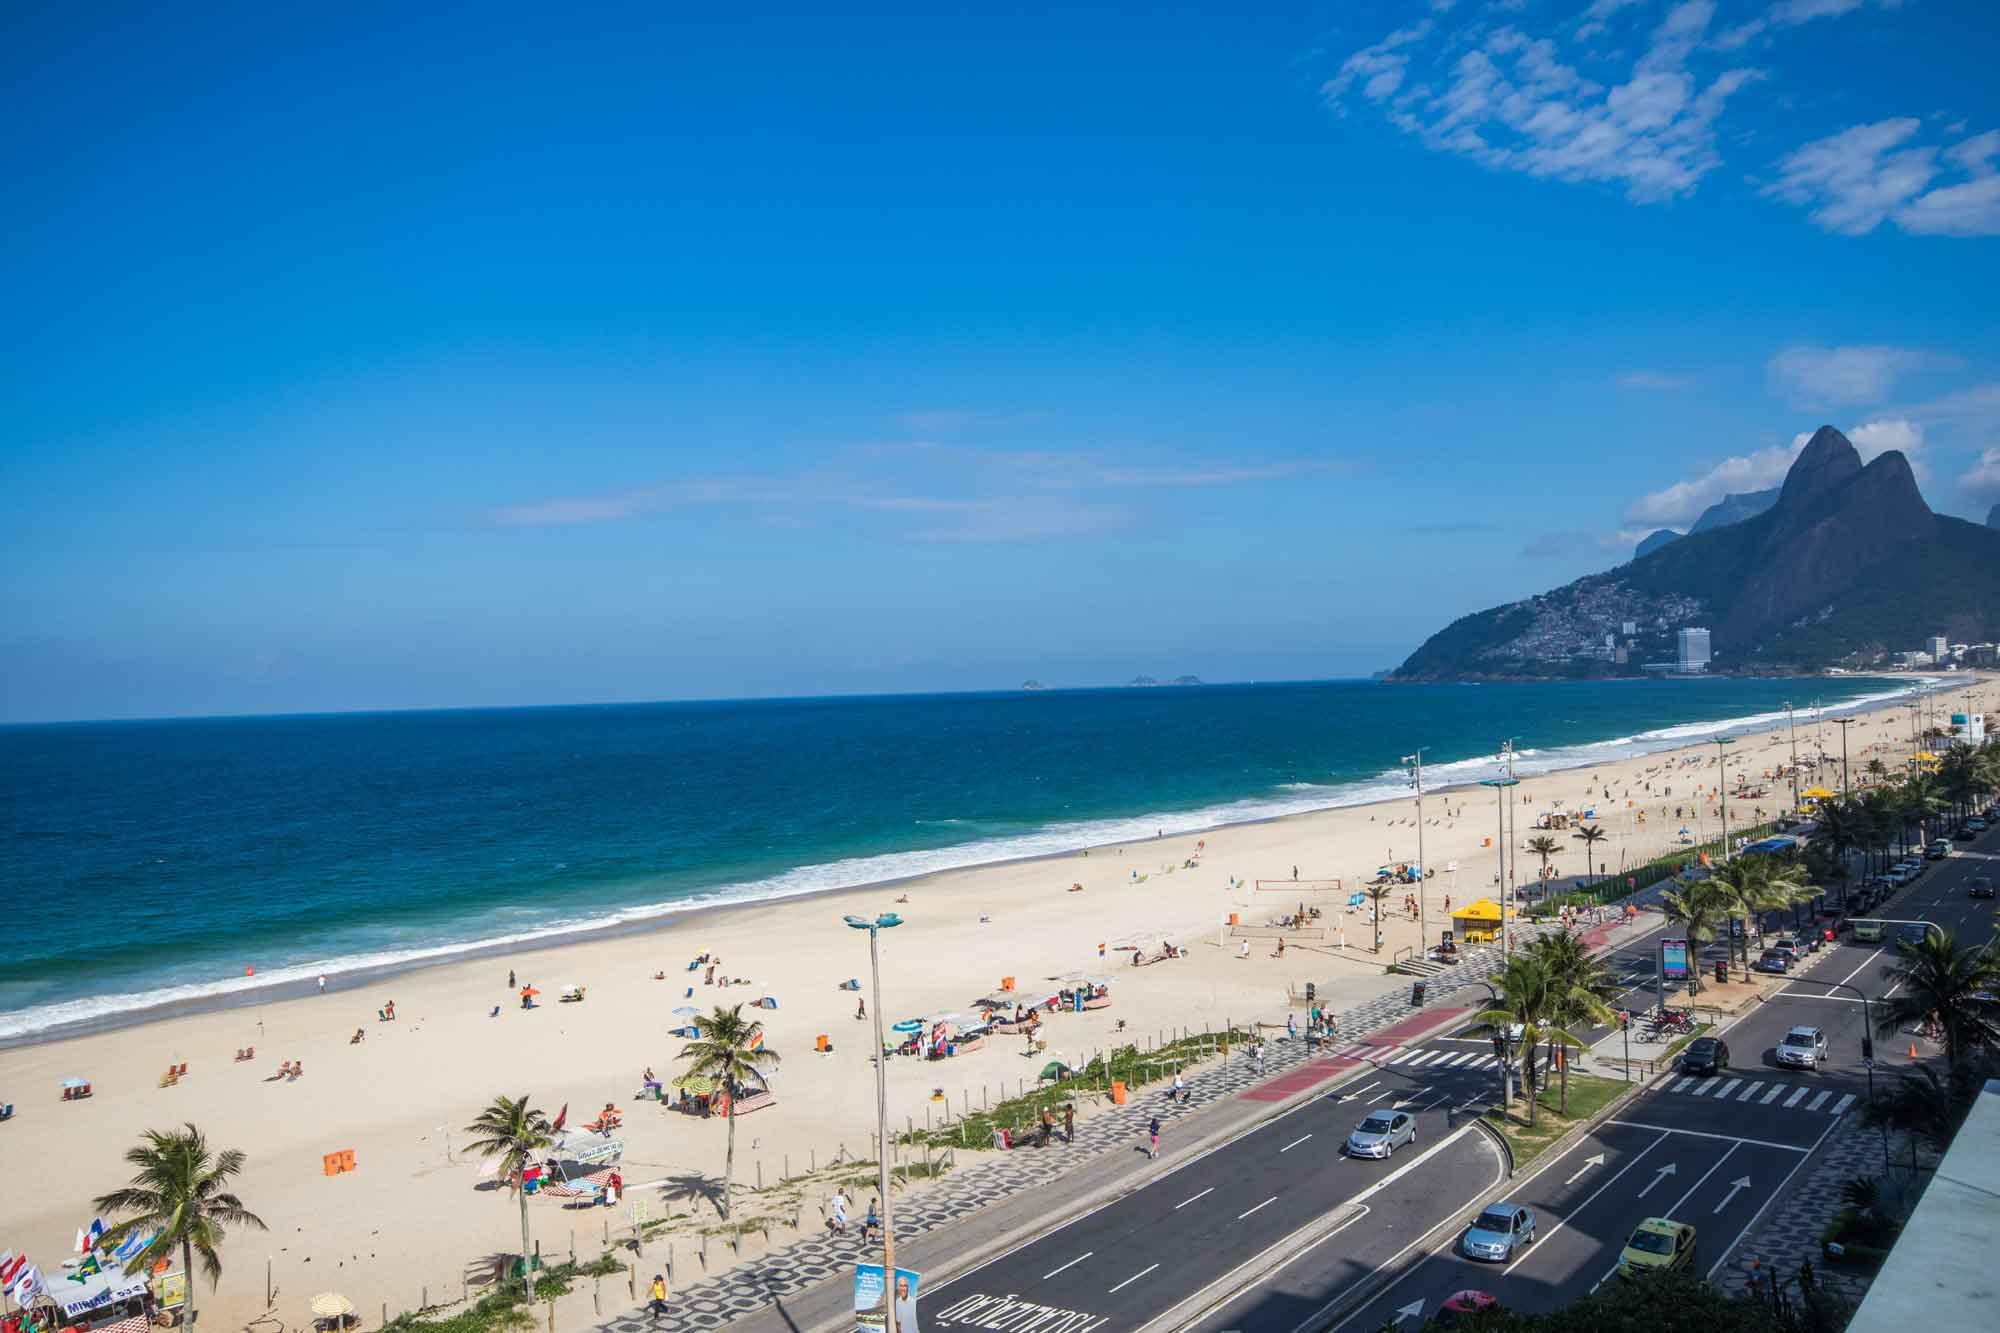 A stunning lap pool points to Ipanema Beach and Sugarloaf from the terrace of this Rio de Janeiro masterpiece.